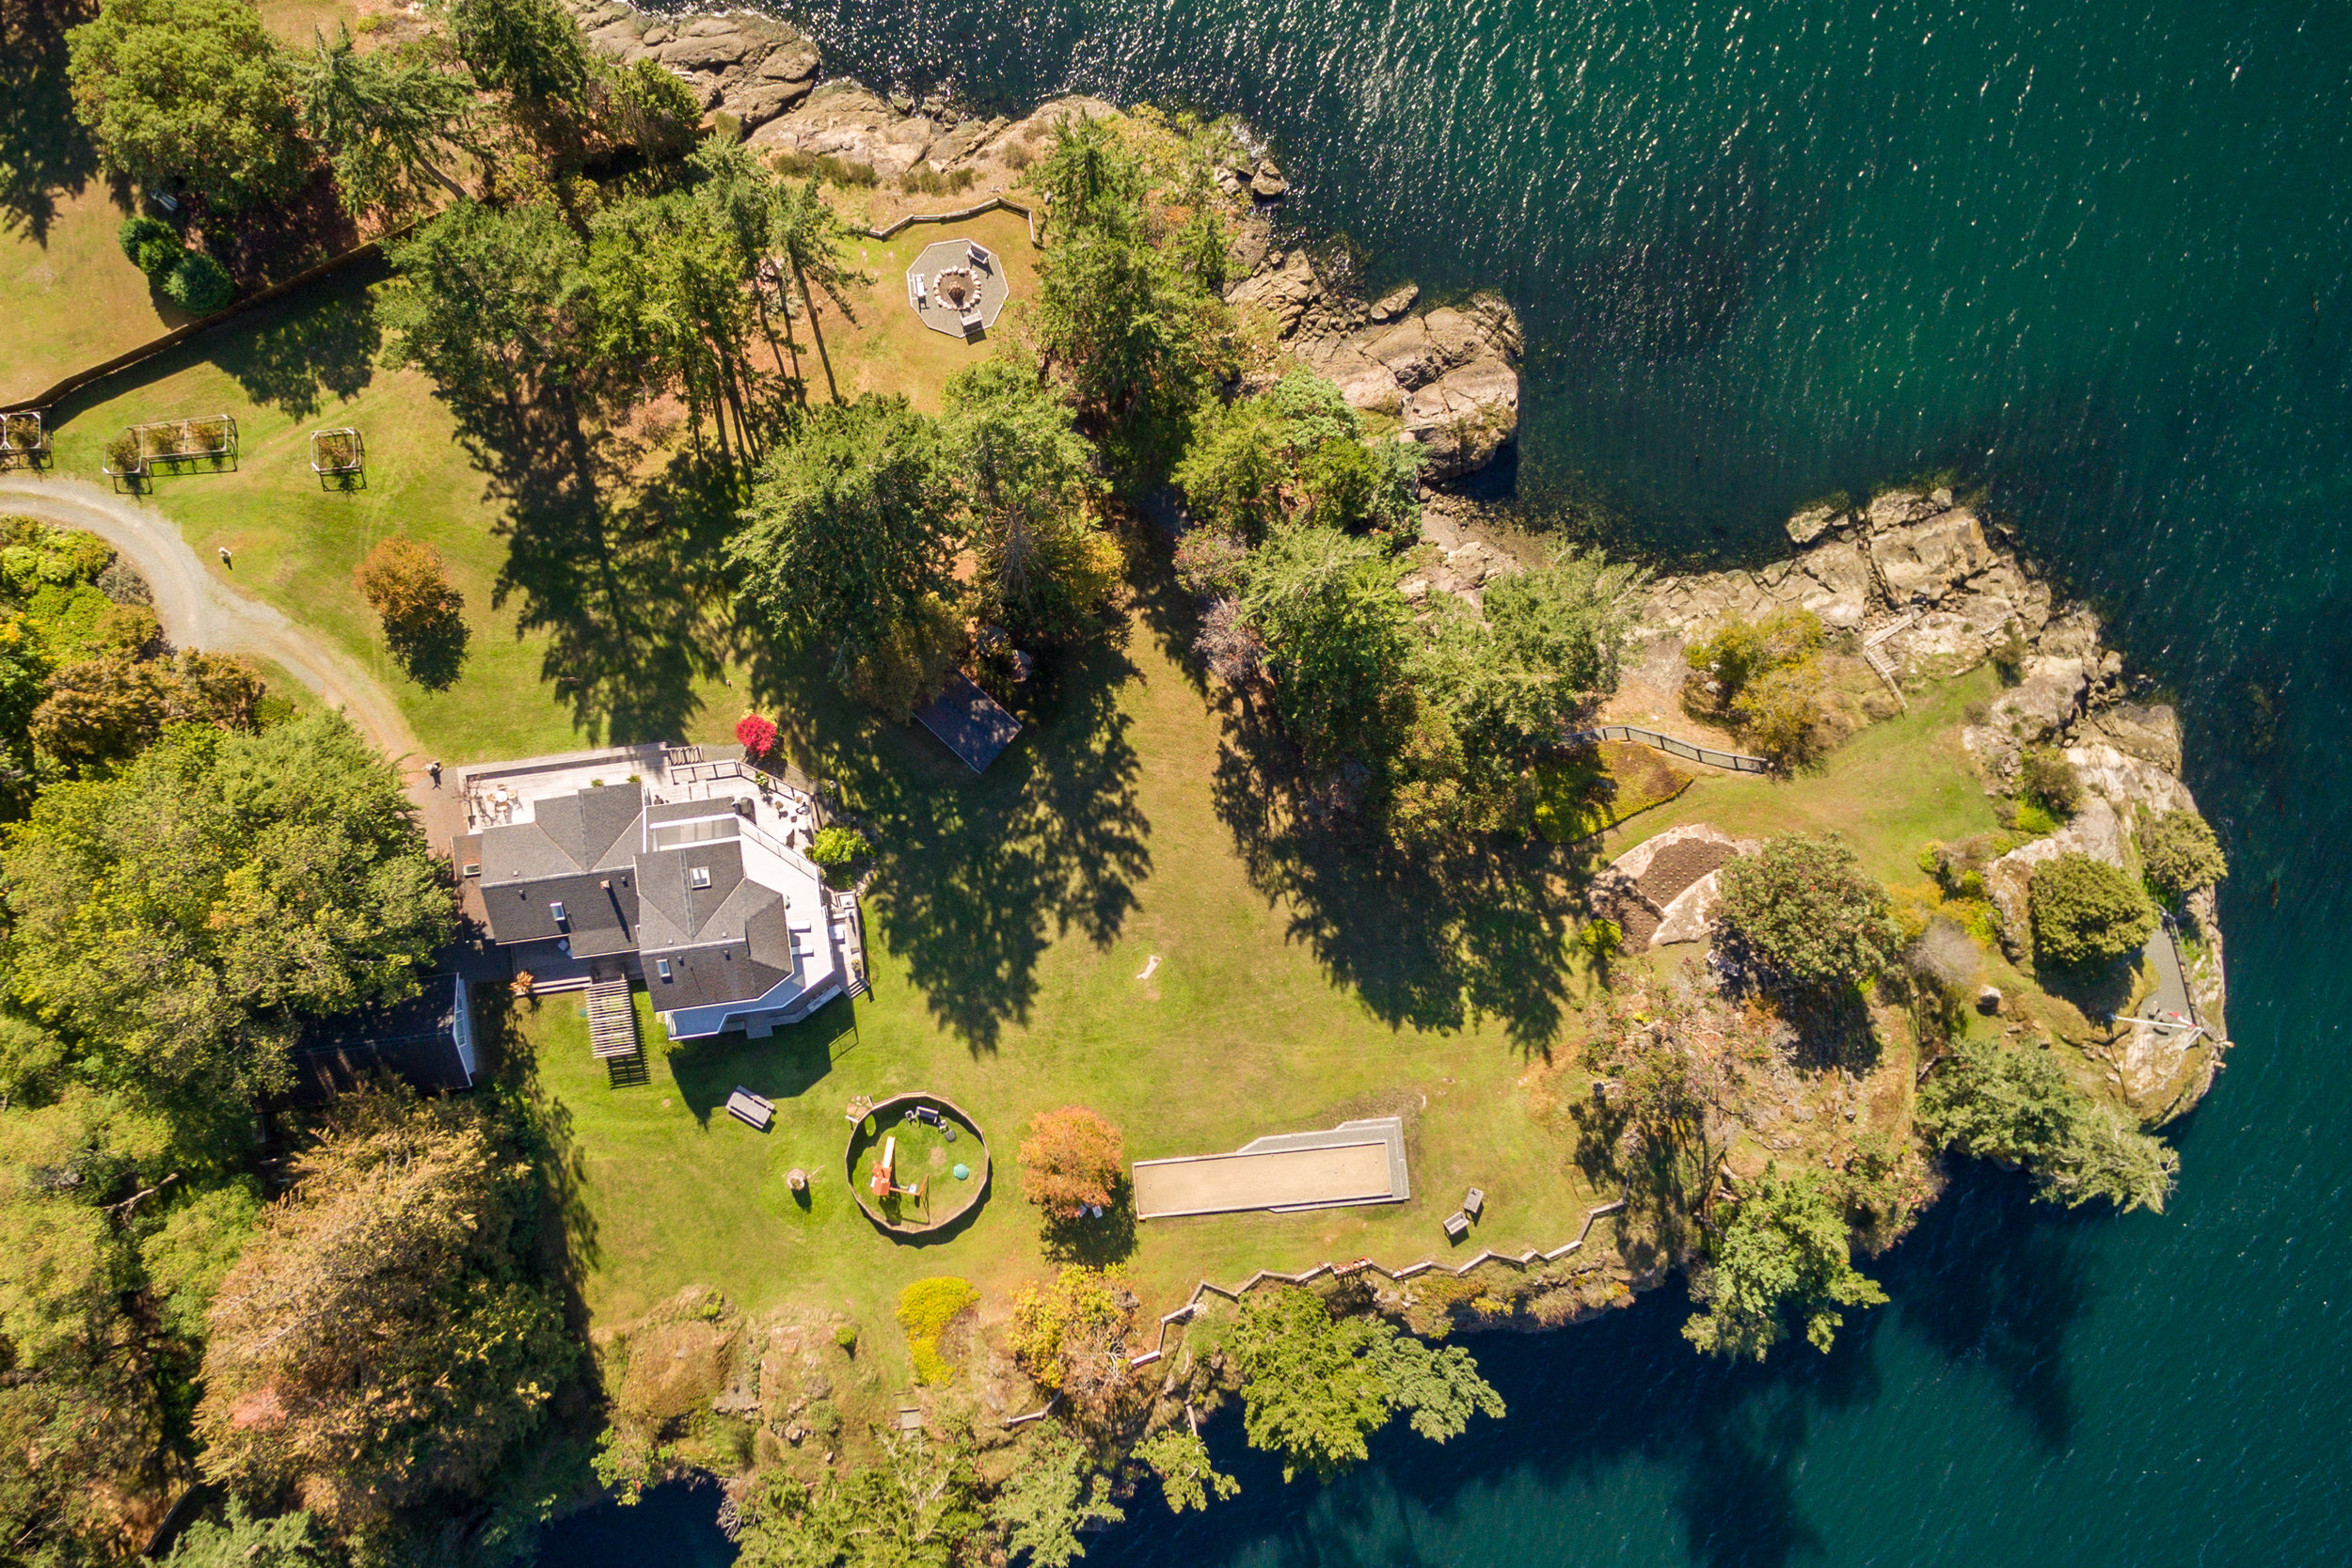 Aerial Services - Cobalt Visual specializes in low altitude, high definition aerial imaging services, including video, photography, surveys and inspections for Vancouver Island and surrounding communities.